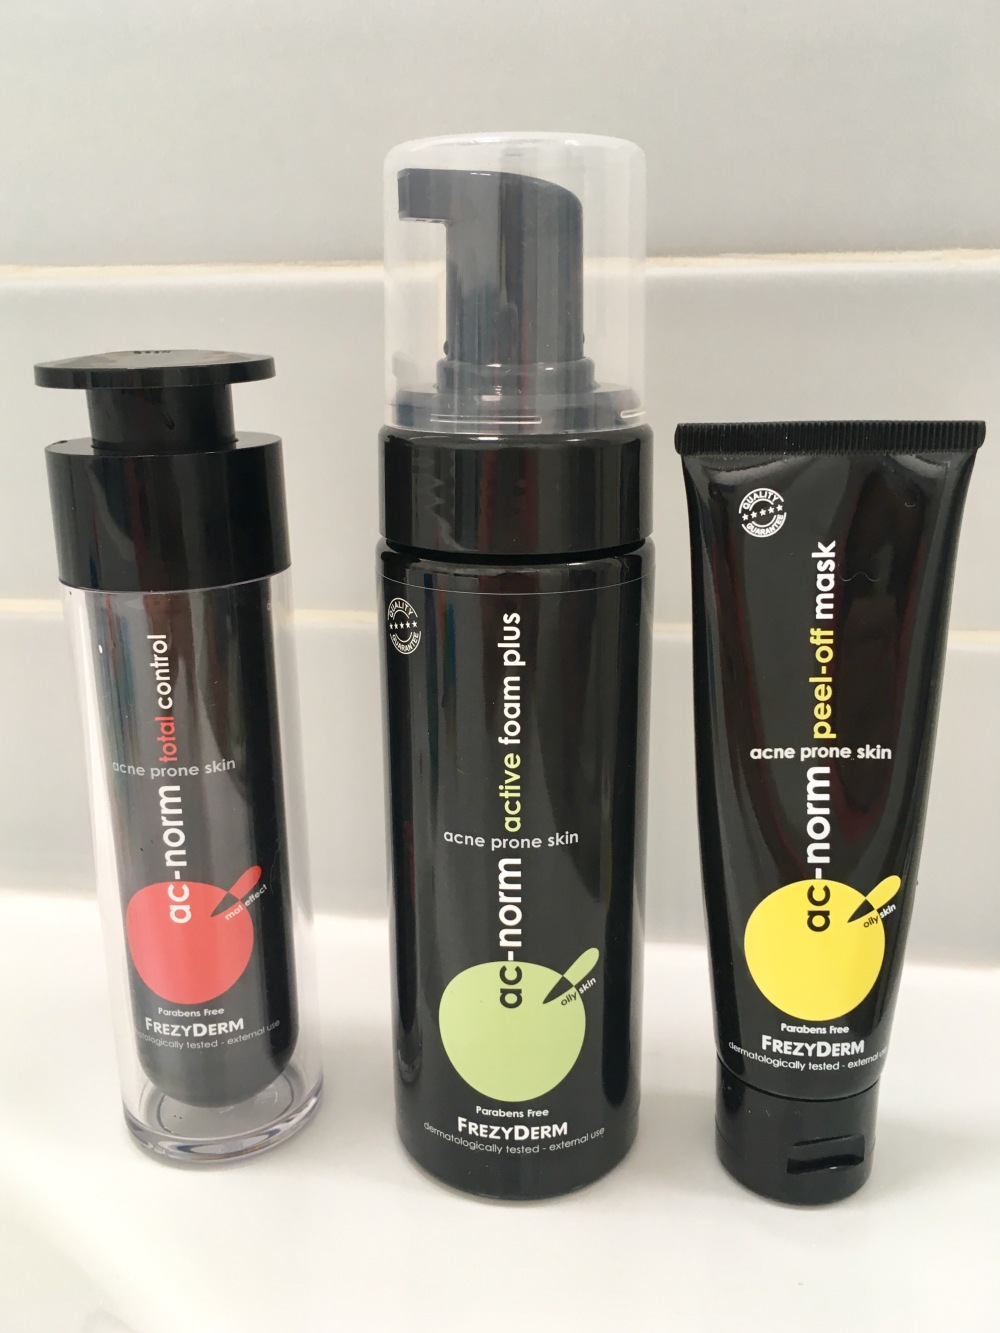 Frezyderm AC-Norm Skincare for Acne Prone Skin Review- 2 black pump bottles and a tube